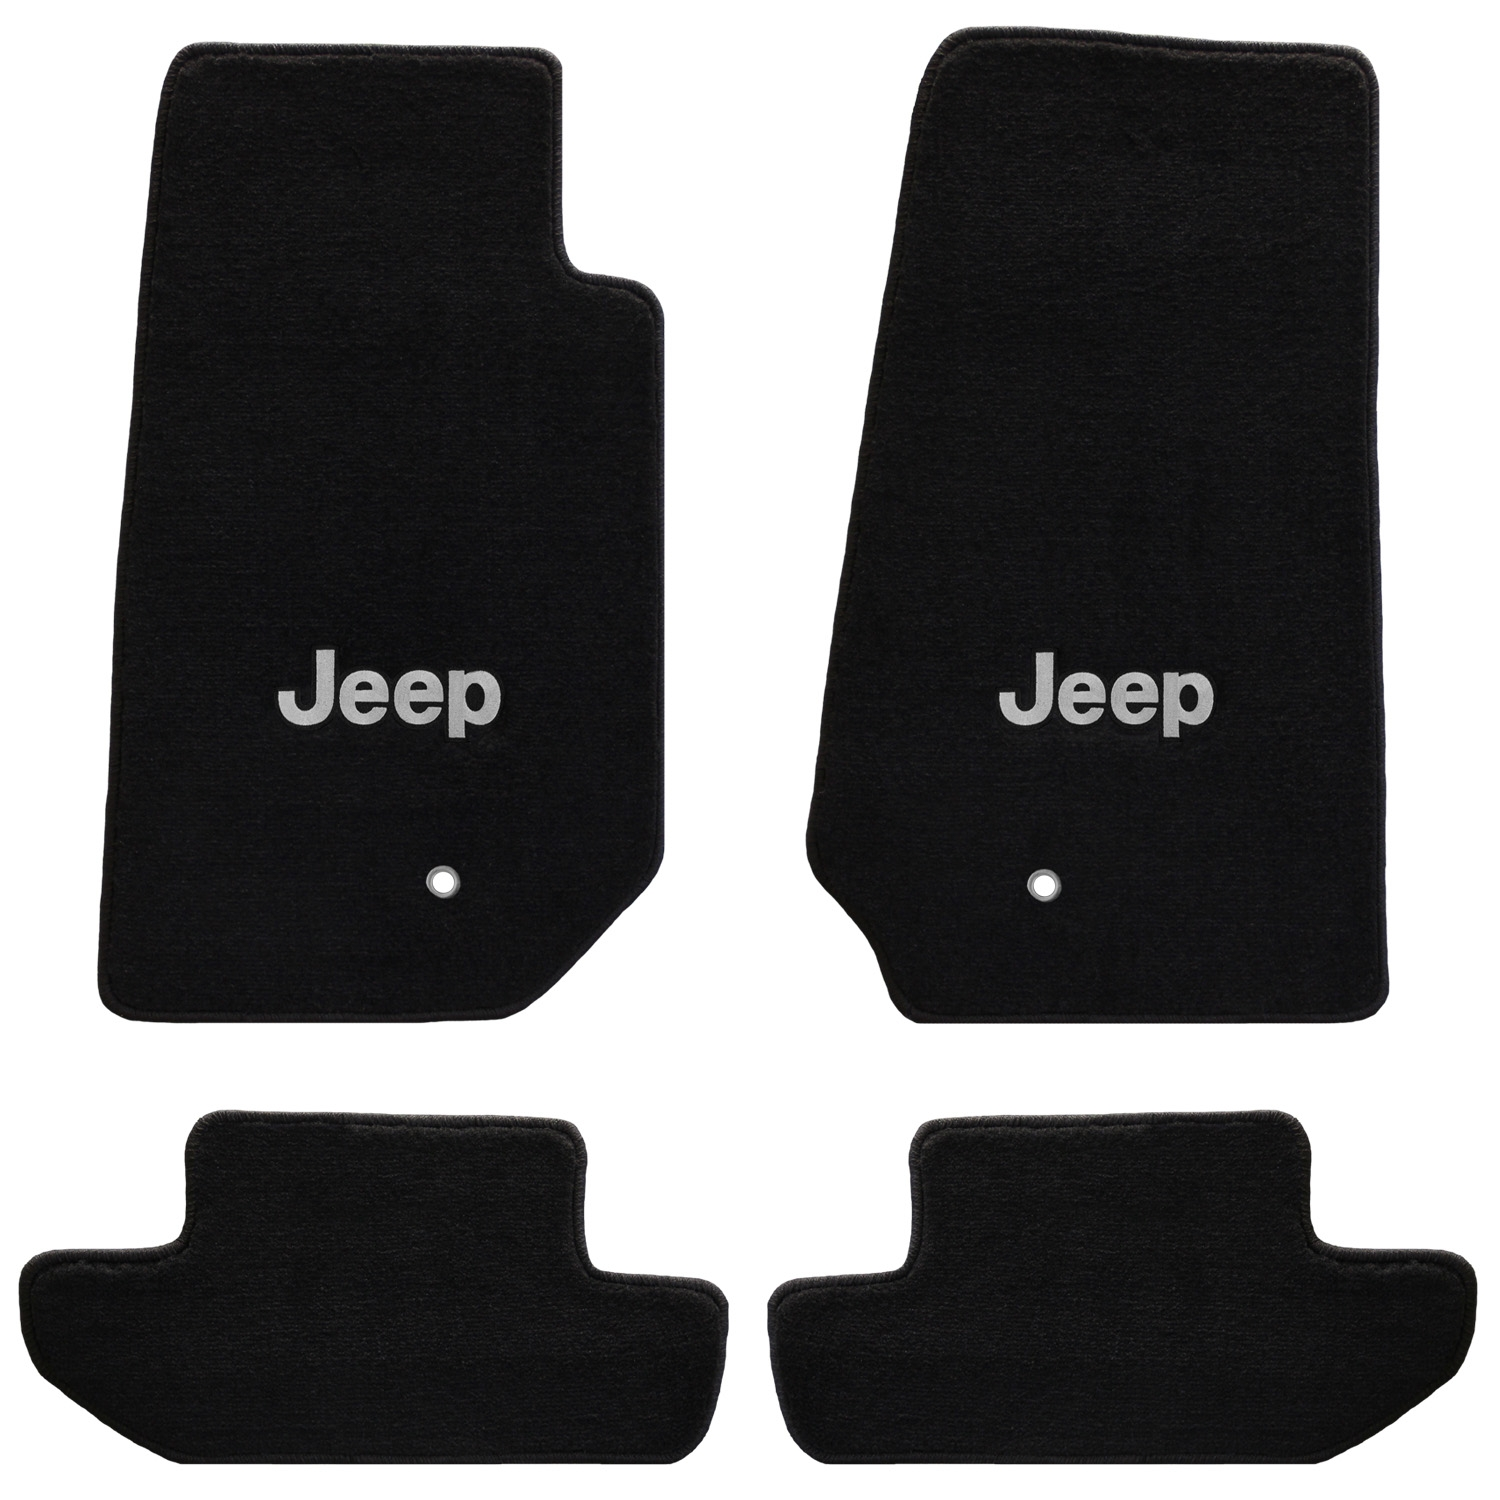 Image of Lloyd Mats All Weather Black Front And Rear Floor Mat Set, Front With Silver Jeep Logo - 4 Piece Set